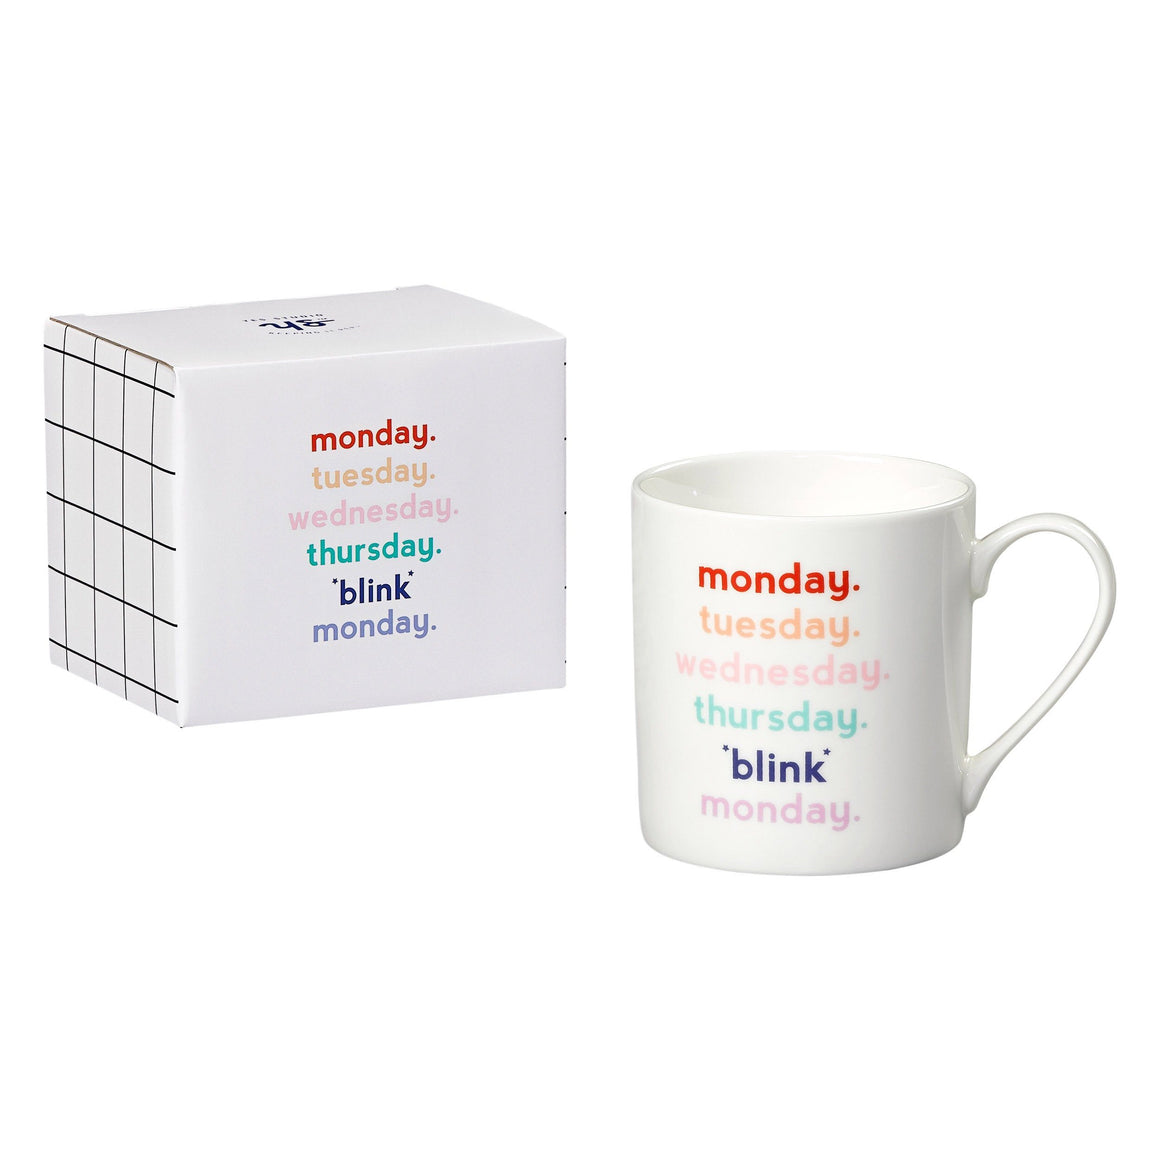 DRINKWARE - MUG MONDAY BLINK, Drinkware, Wild & Wolf - Bon + Co. Party Studio